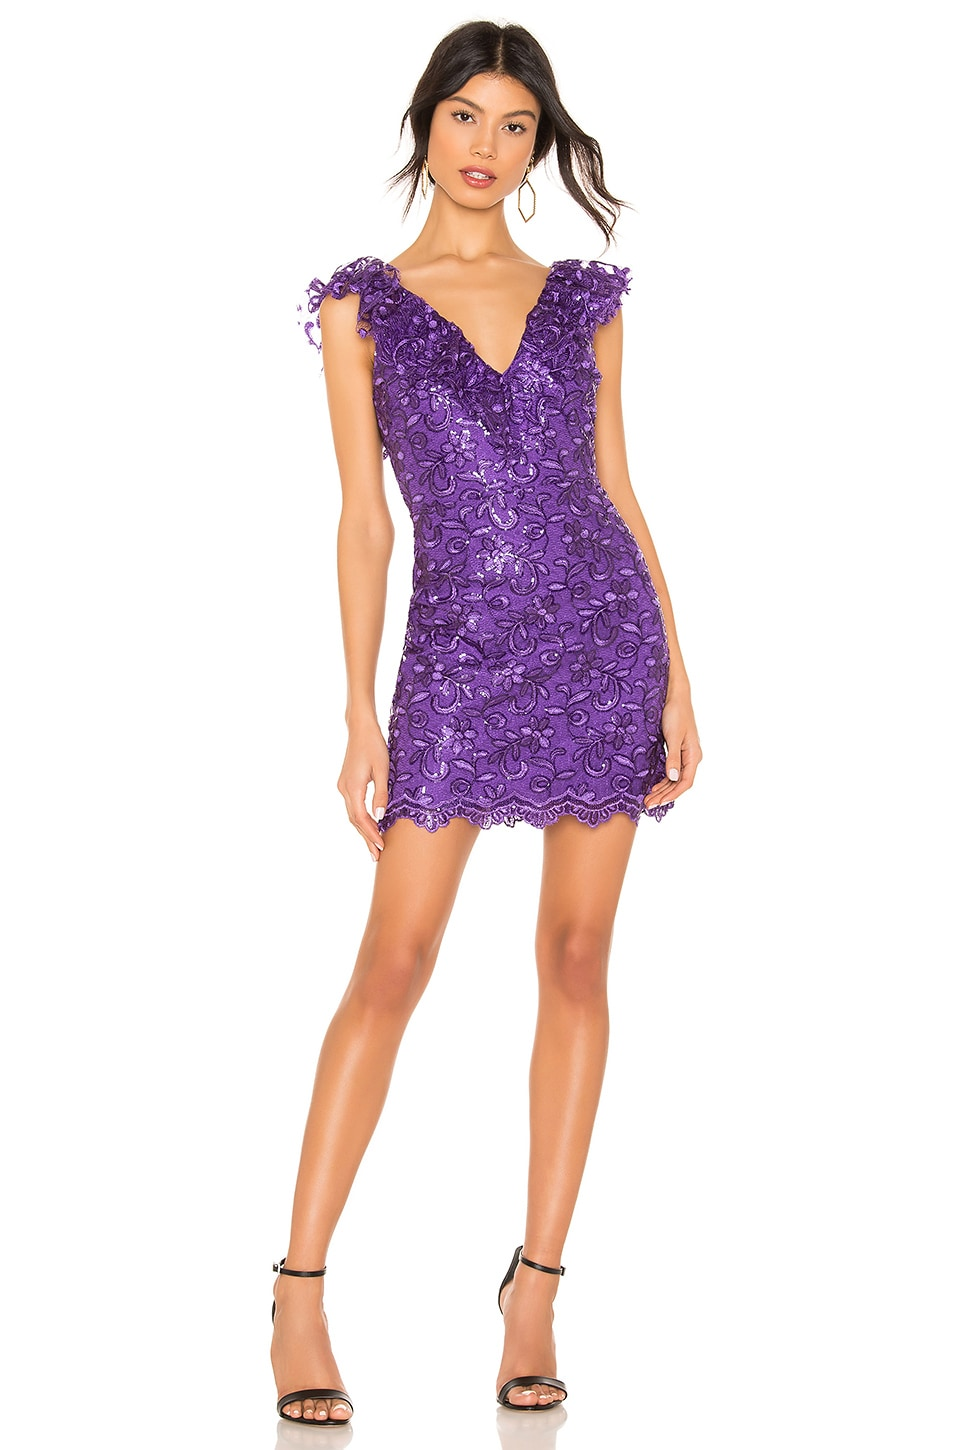 NBD Channing Mini Dress in Ultra Violet